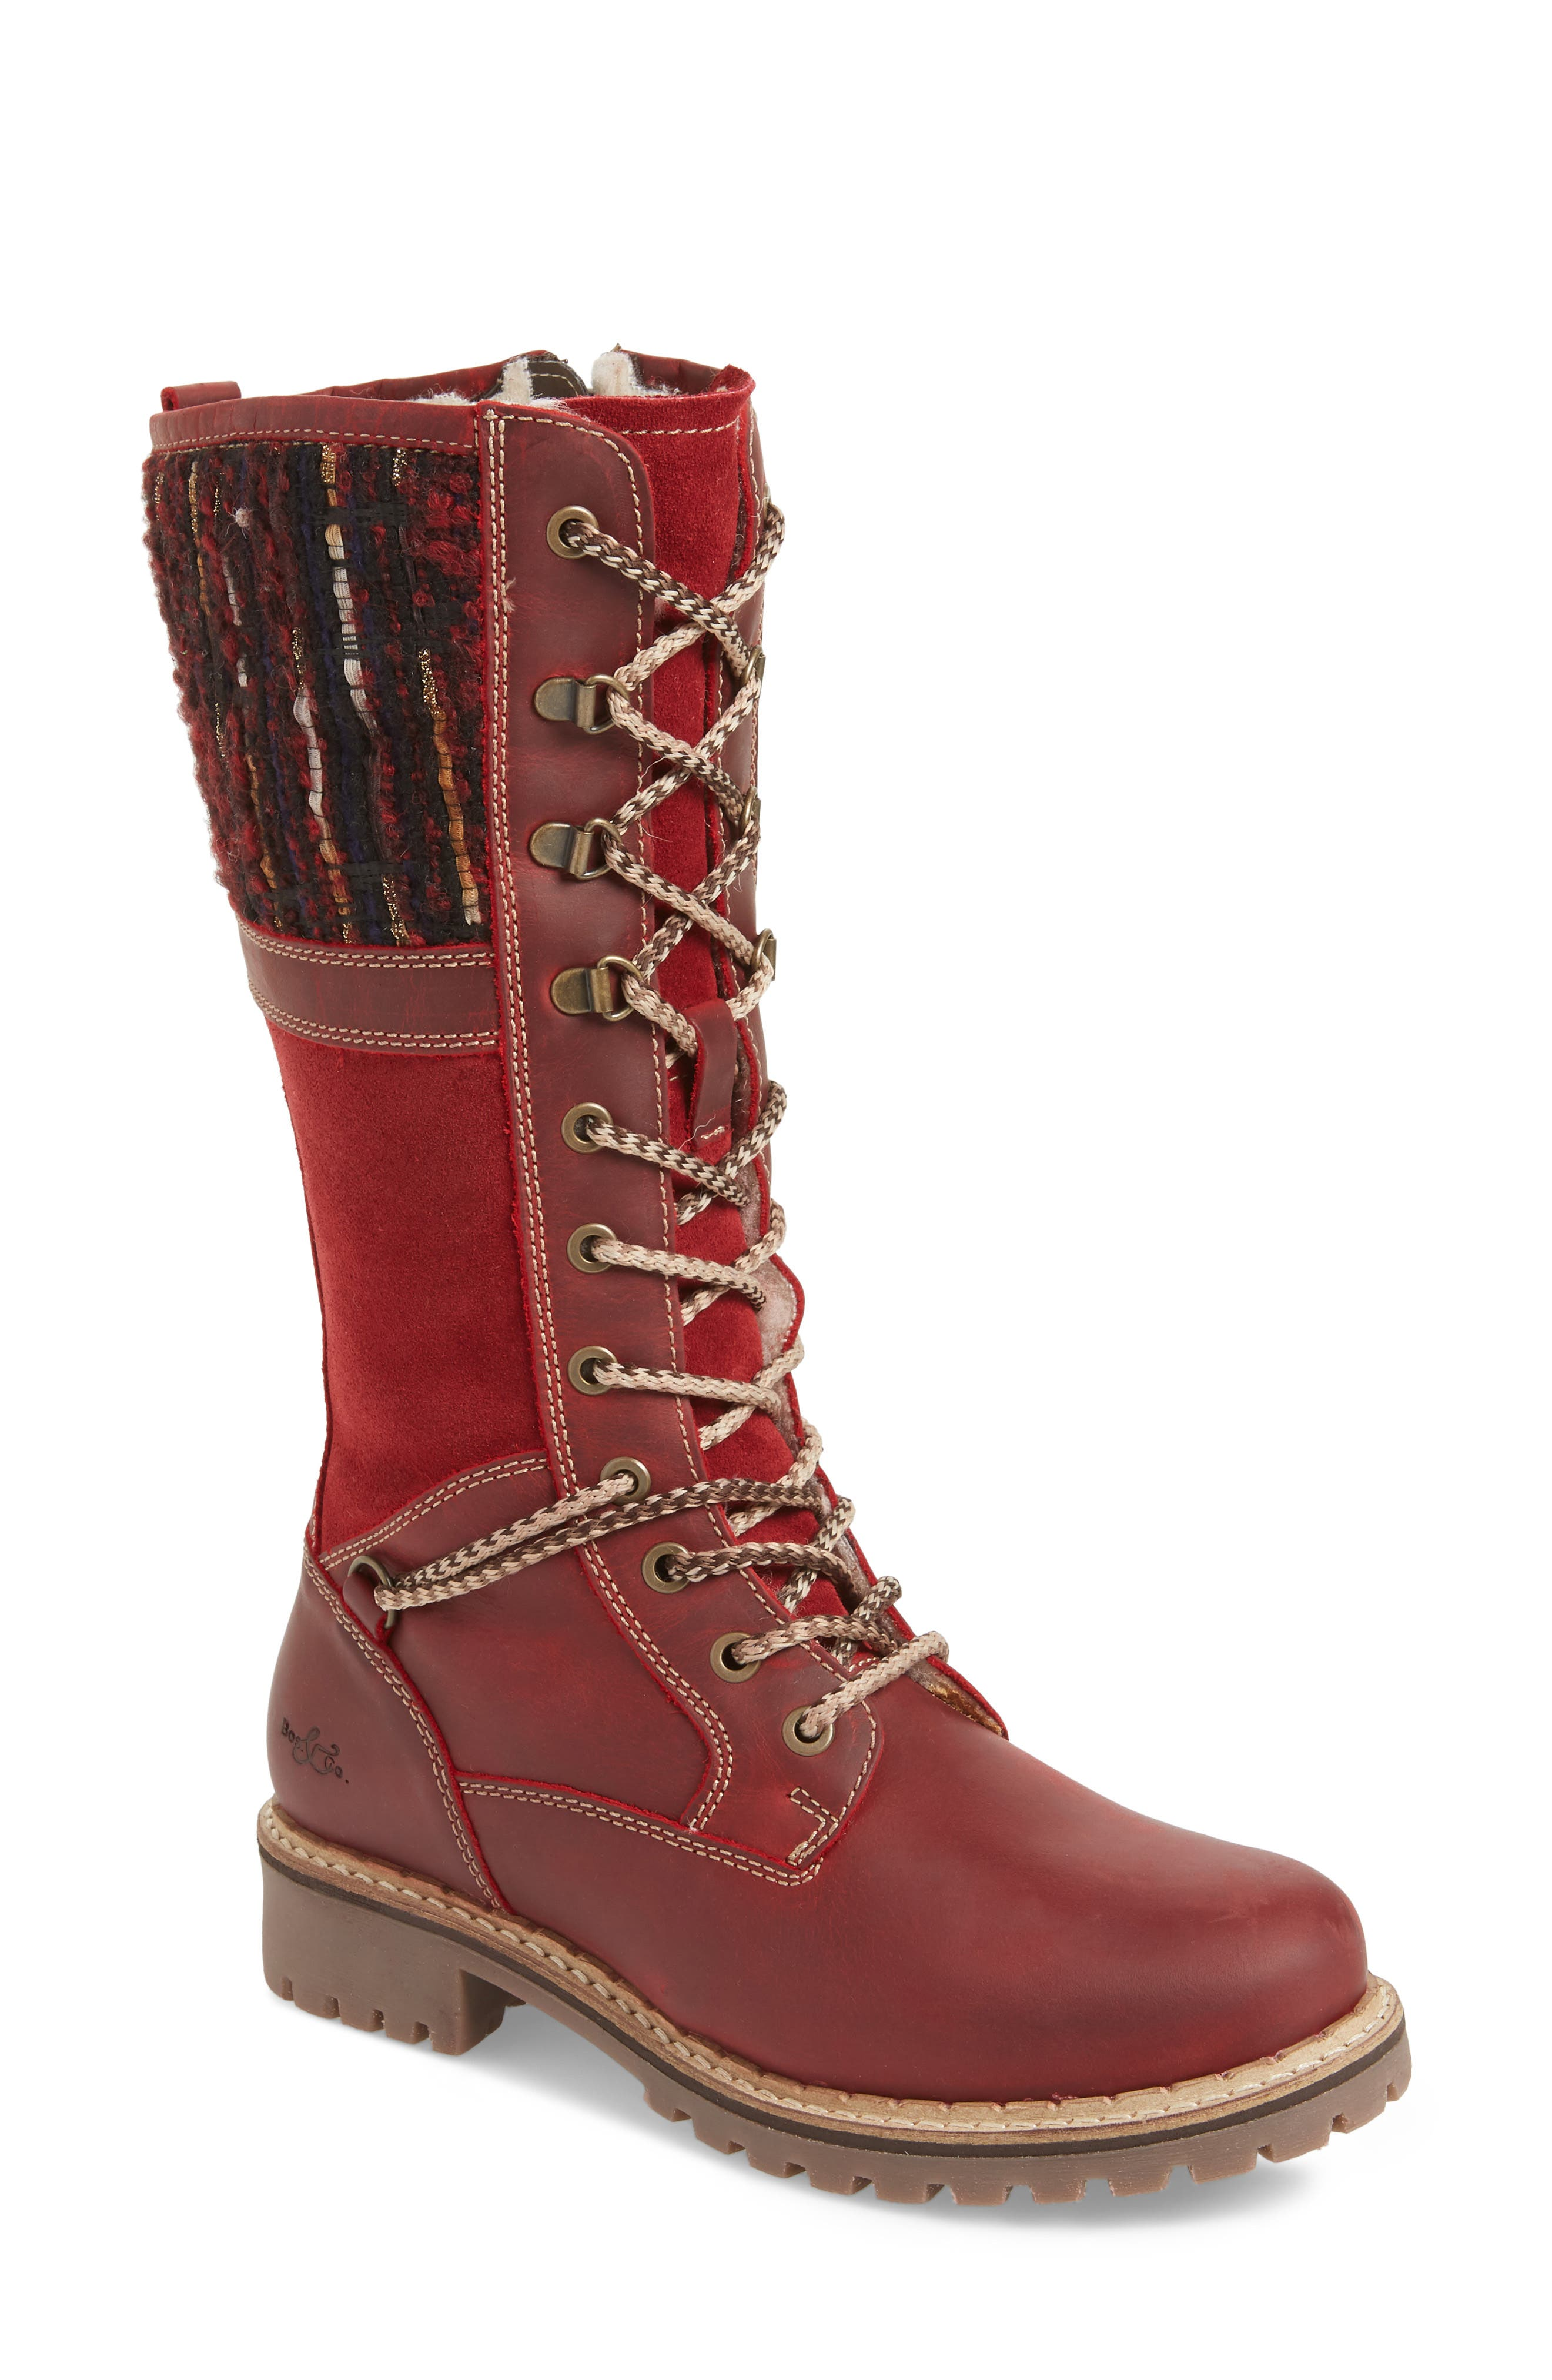 Bos. & Co. Holland Waterproof Boot - Red